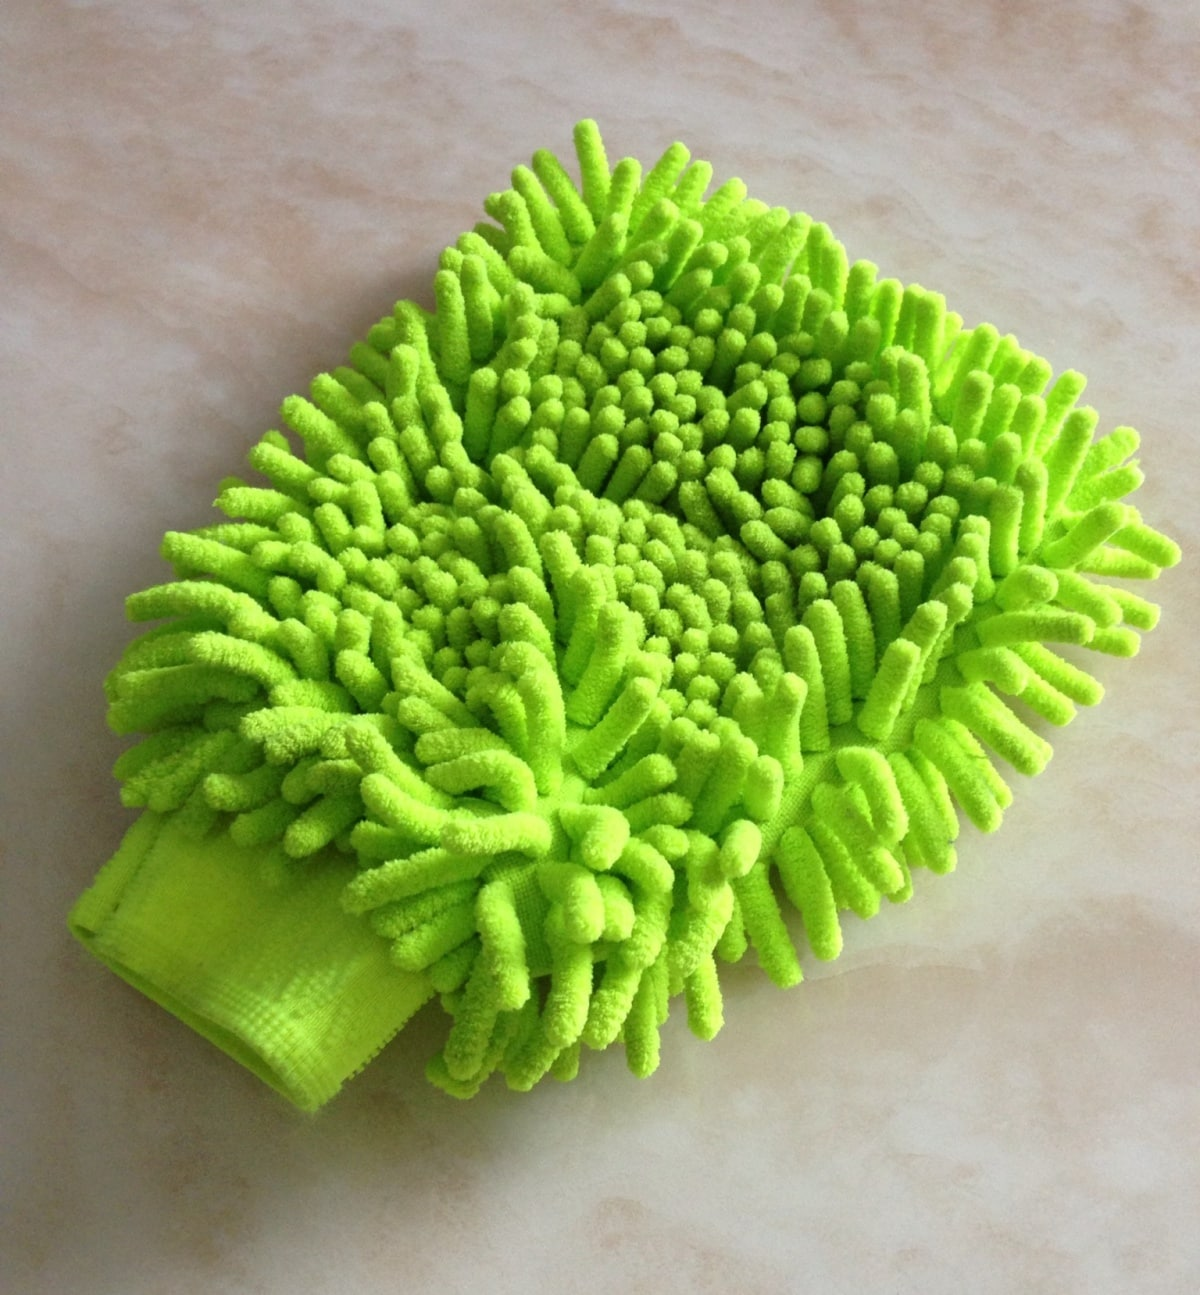 9. Glove Wipe (Hand Mop)